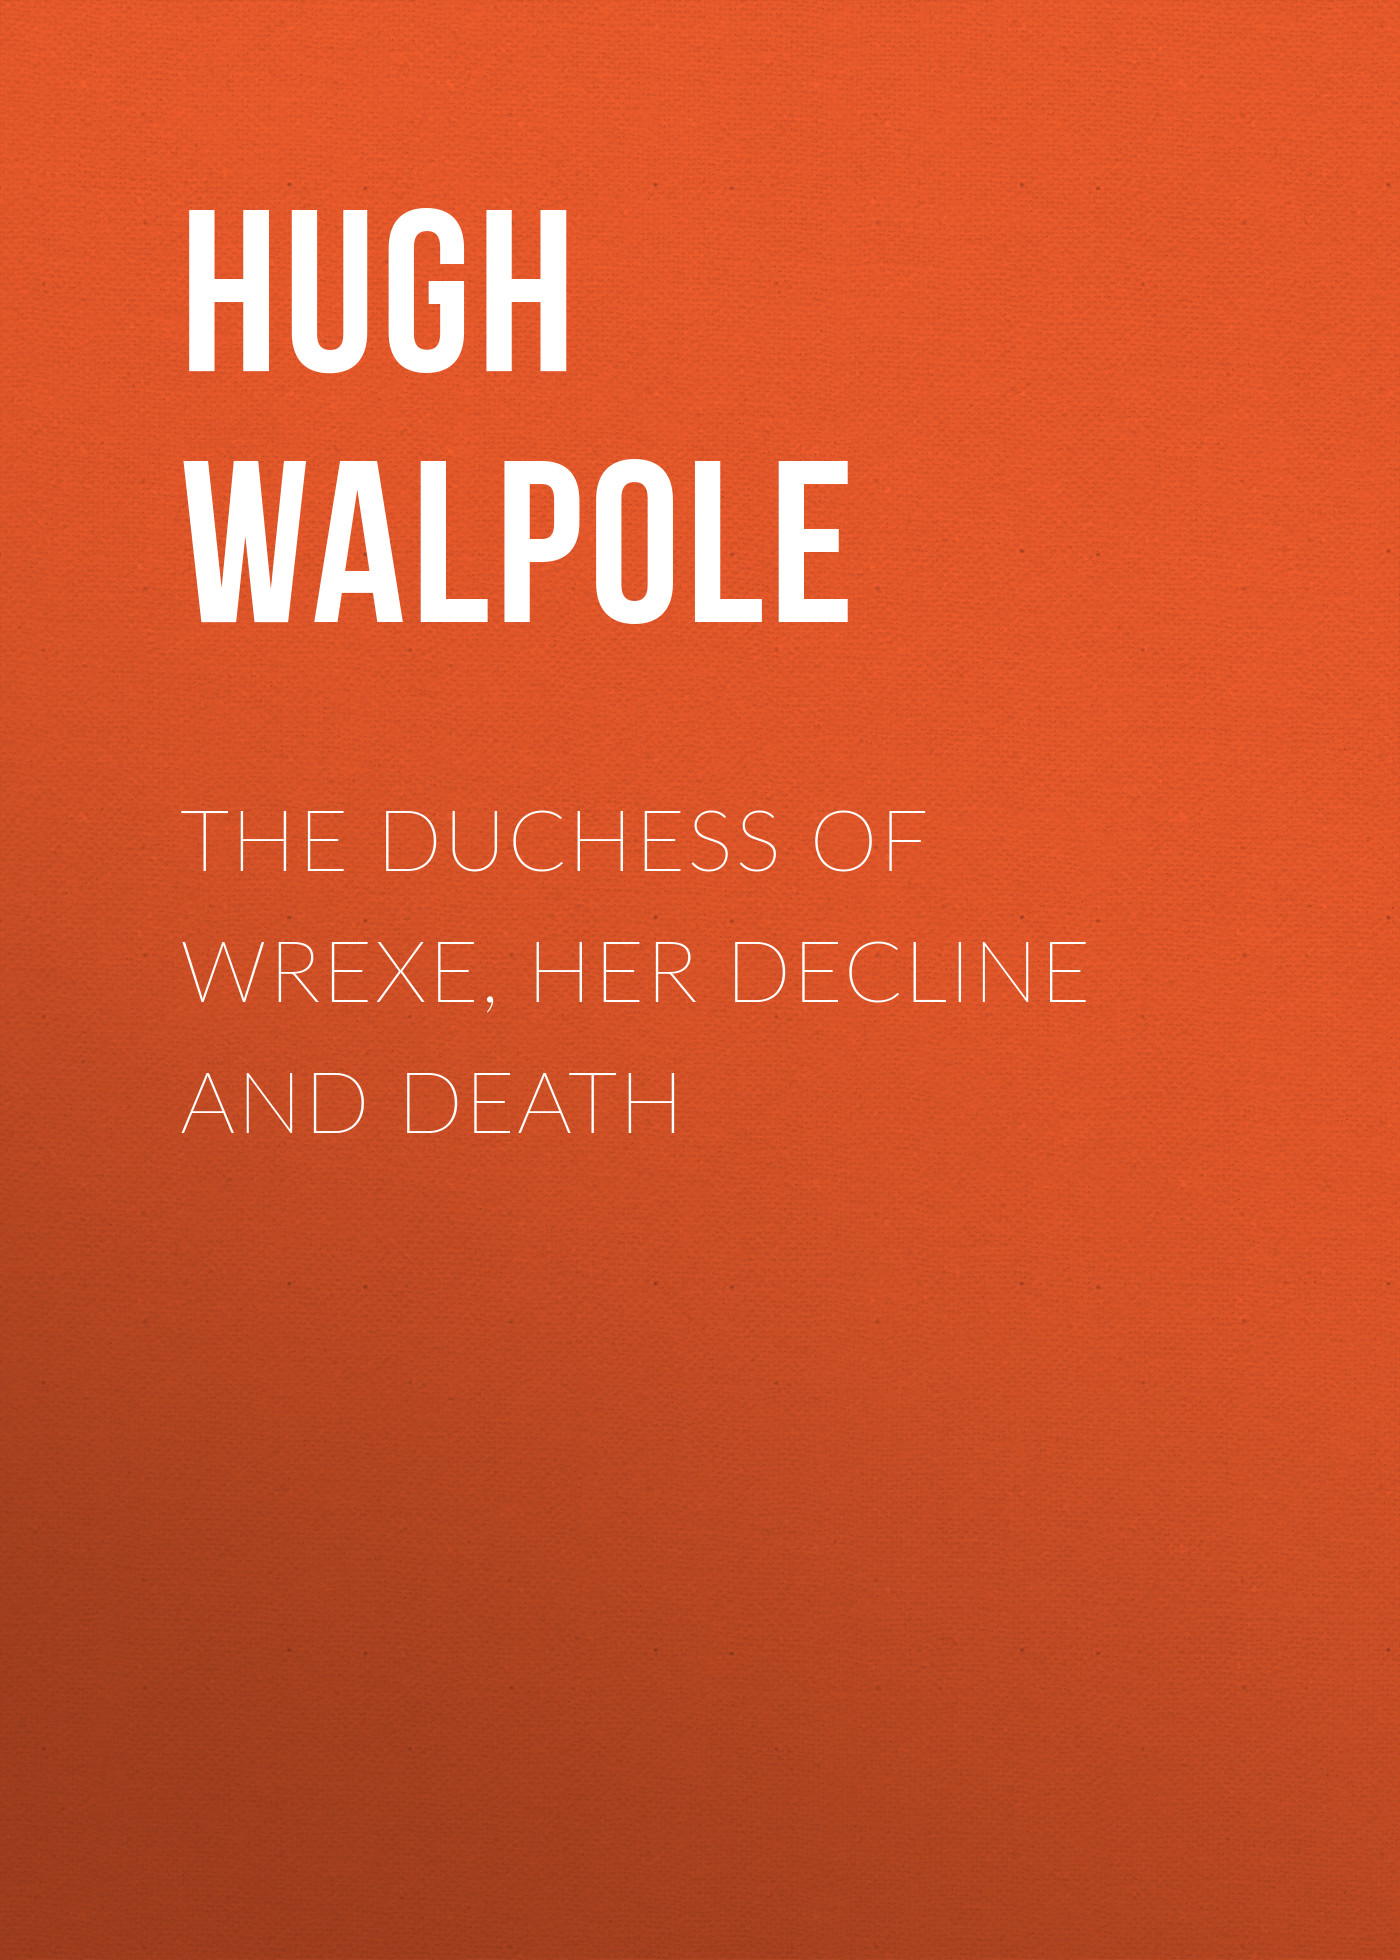 Hugh Walpole The Duchess of Wrexe, Her Decline and Death a new lease of death